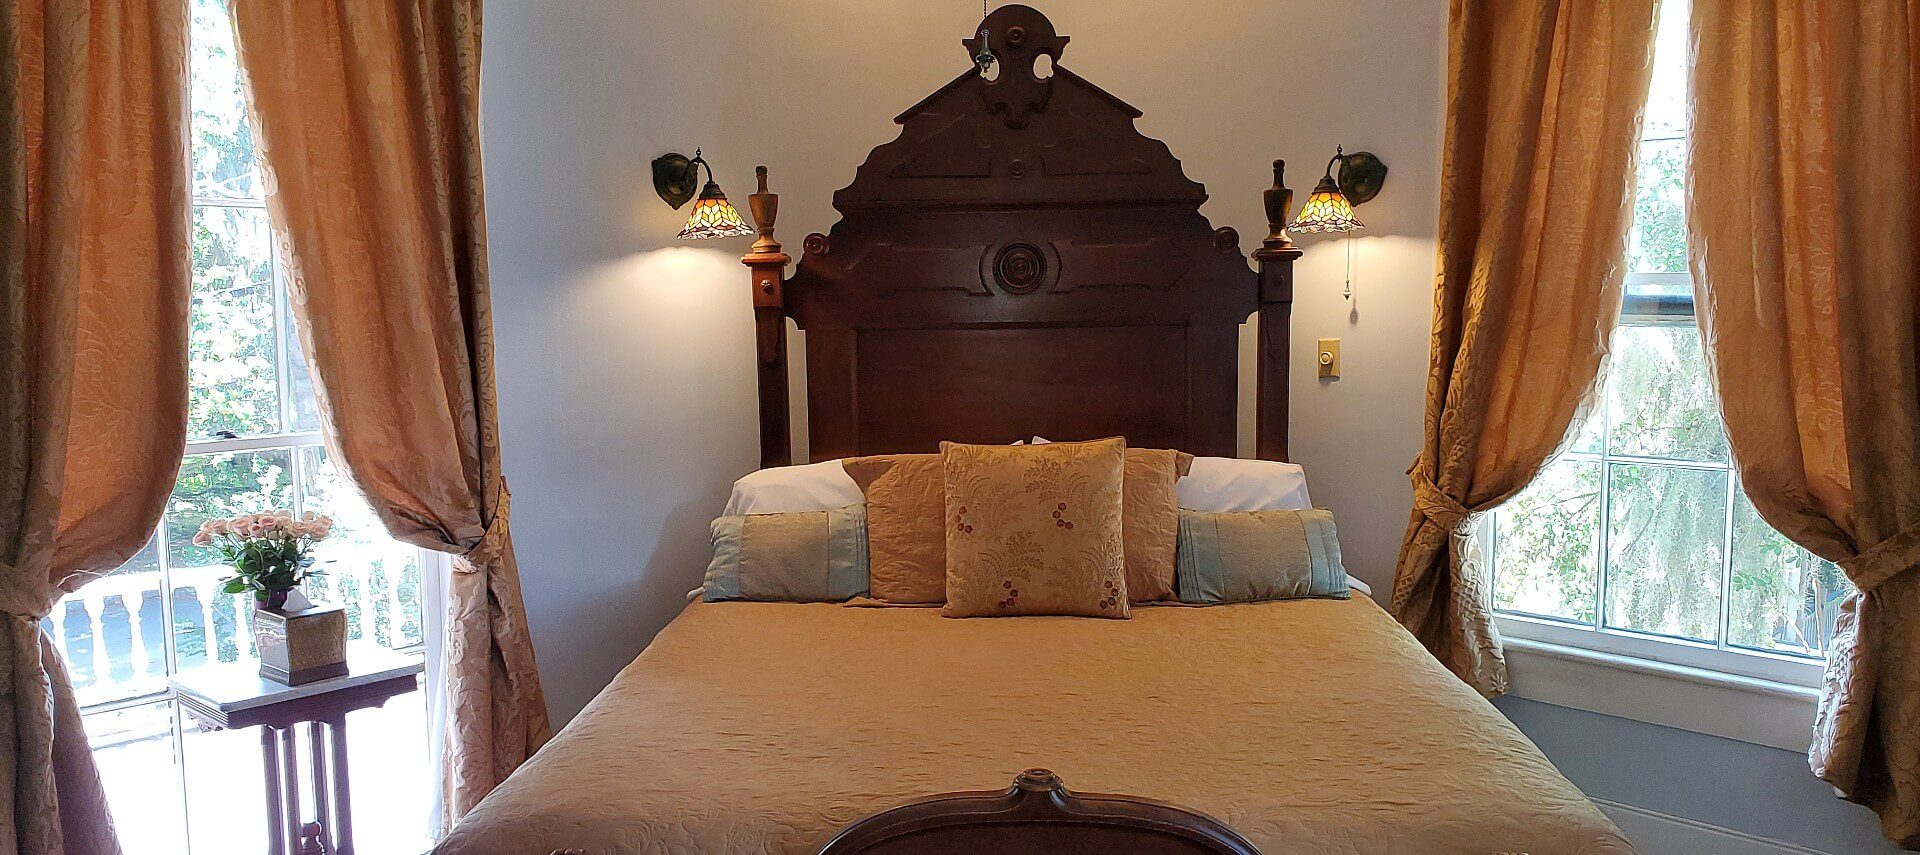 Gorgeous queen bed with tall mahogany headboard and gold linens next to two large bright windows